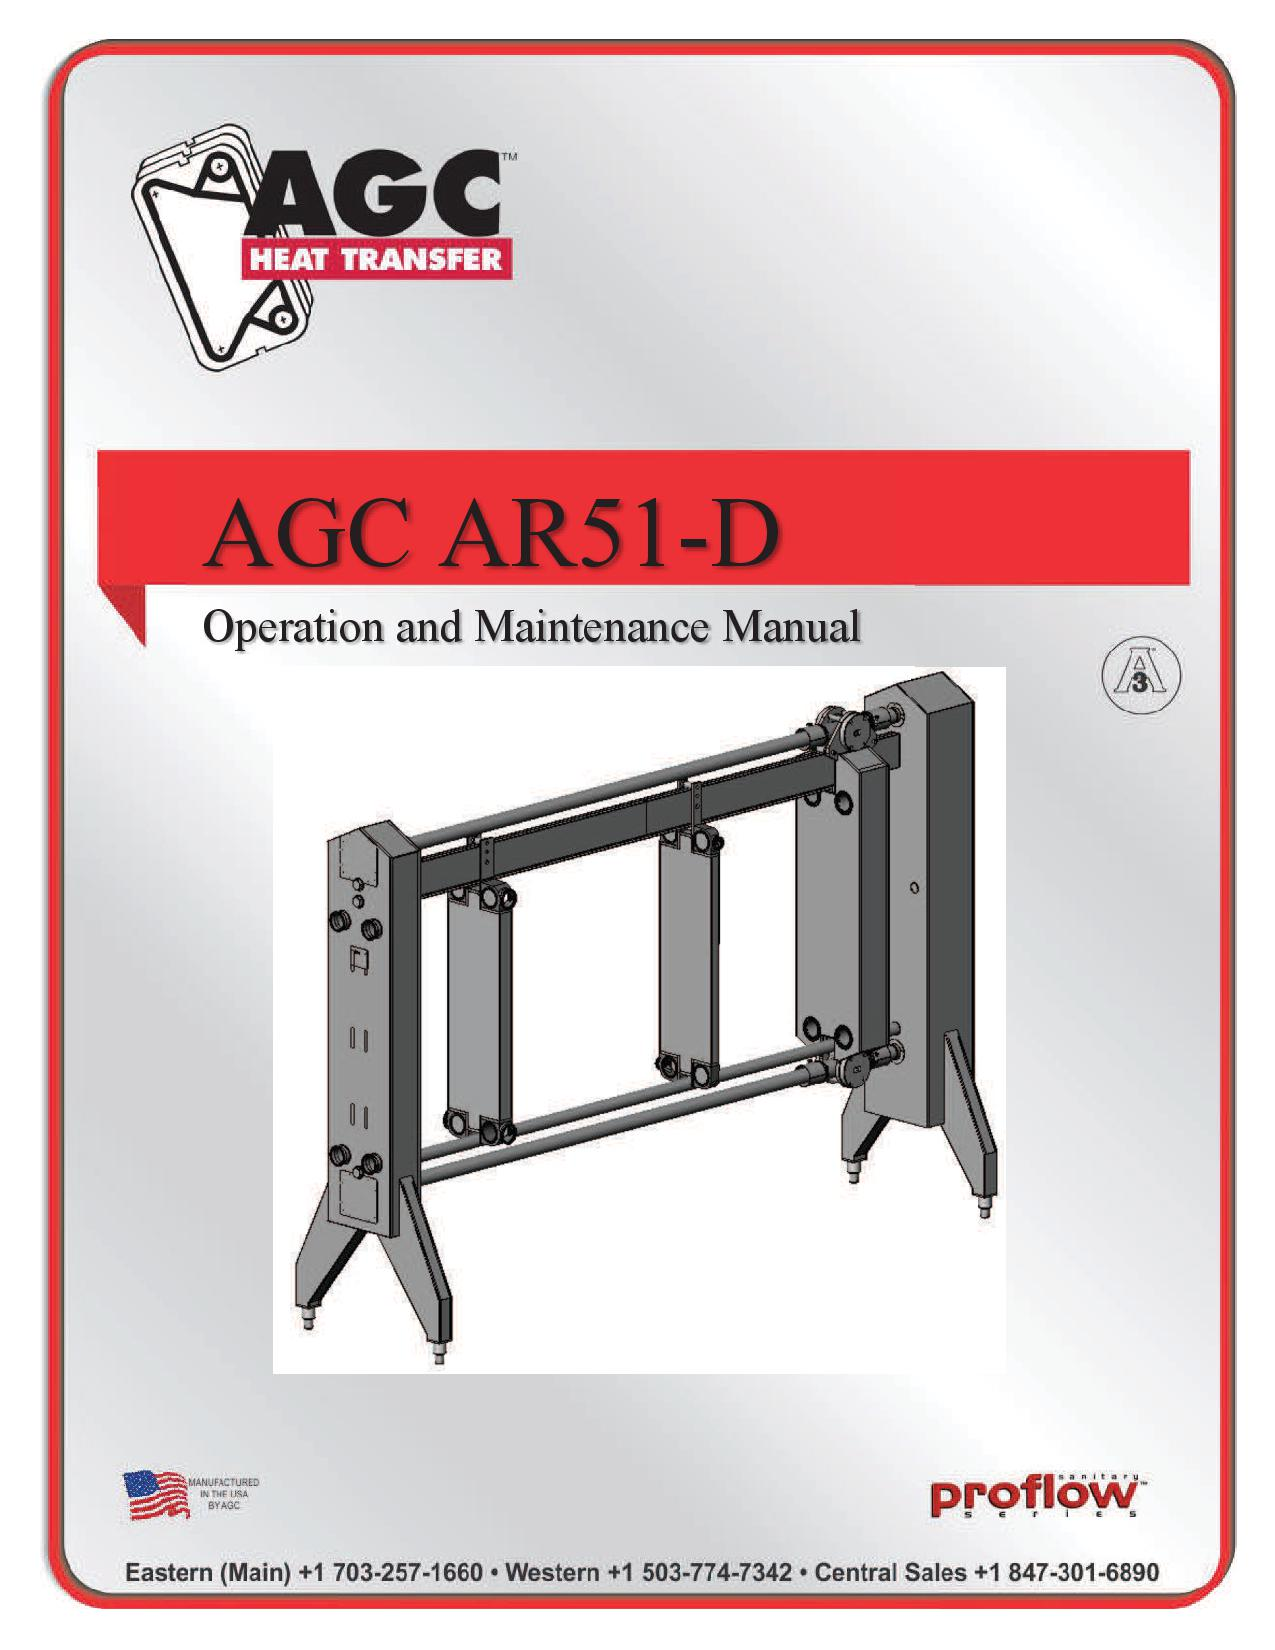 AGC Operating Manual AR51-D